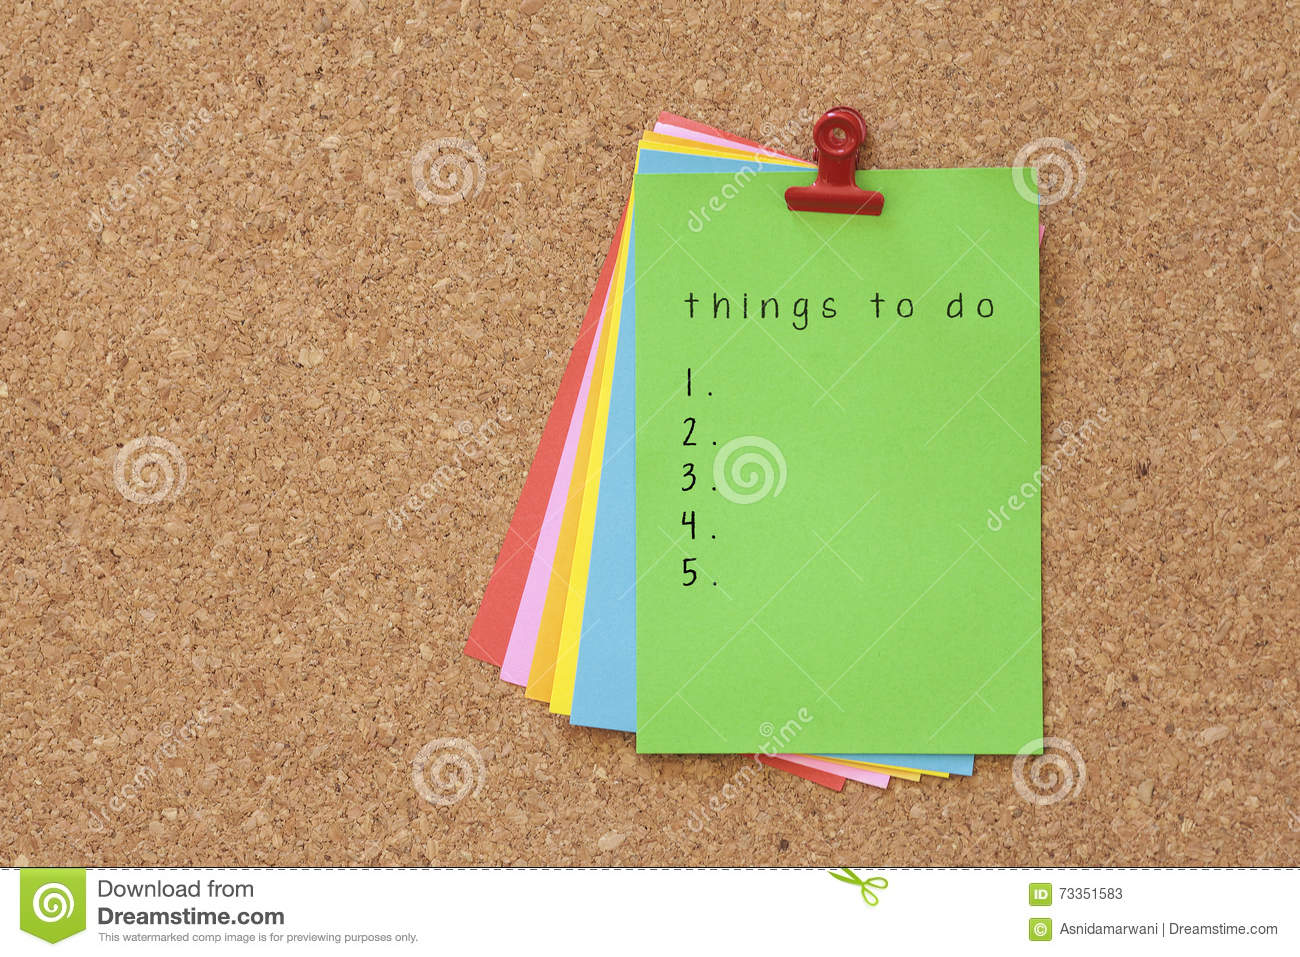 Things To Do Written On Color Sticker Notes Over Cork Board Back Stock Image Image Of Business Insurance 73351583